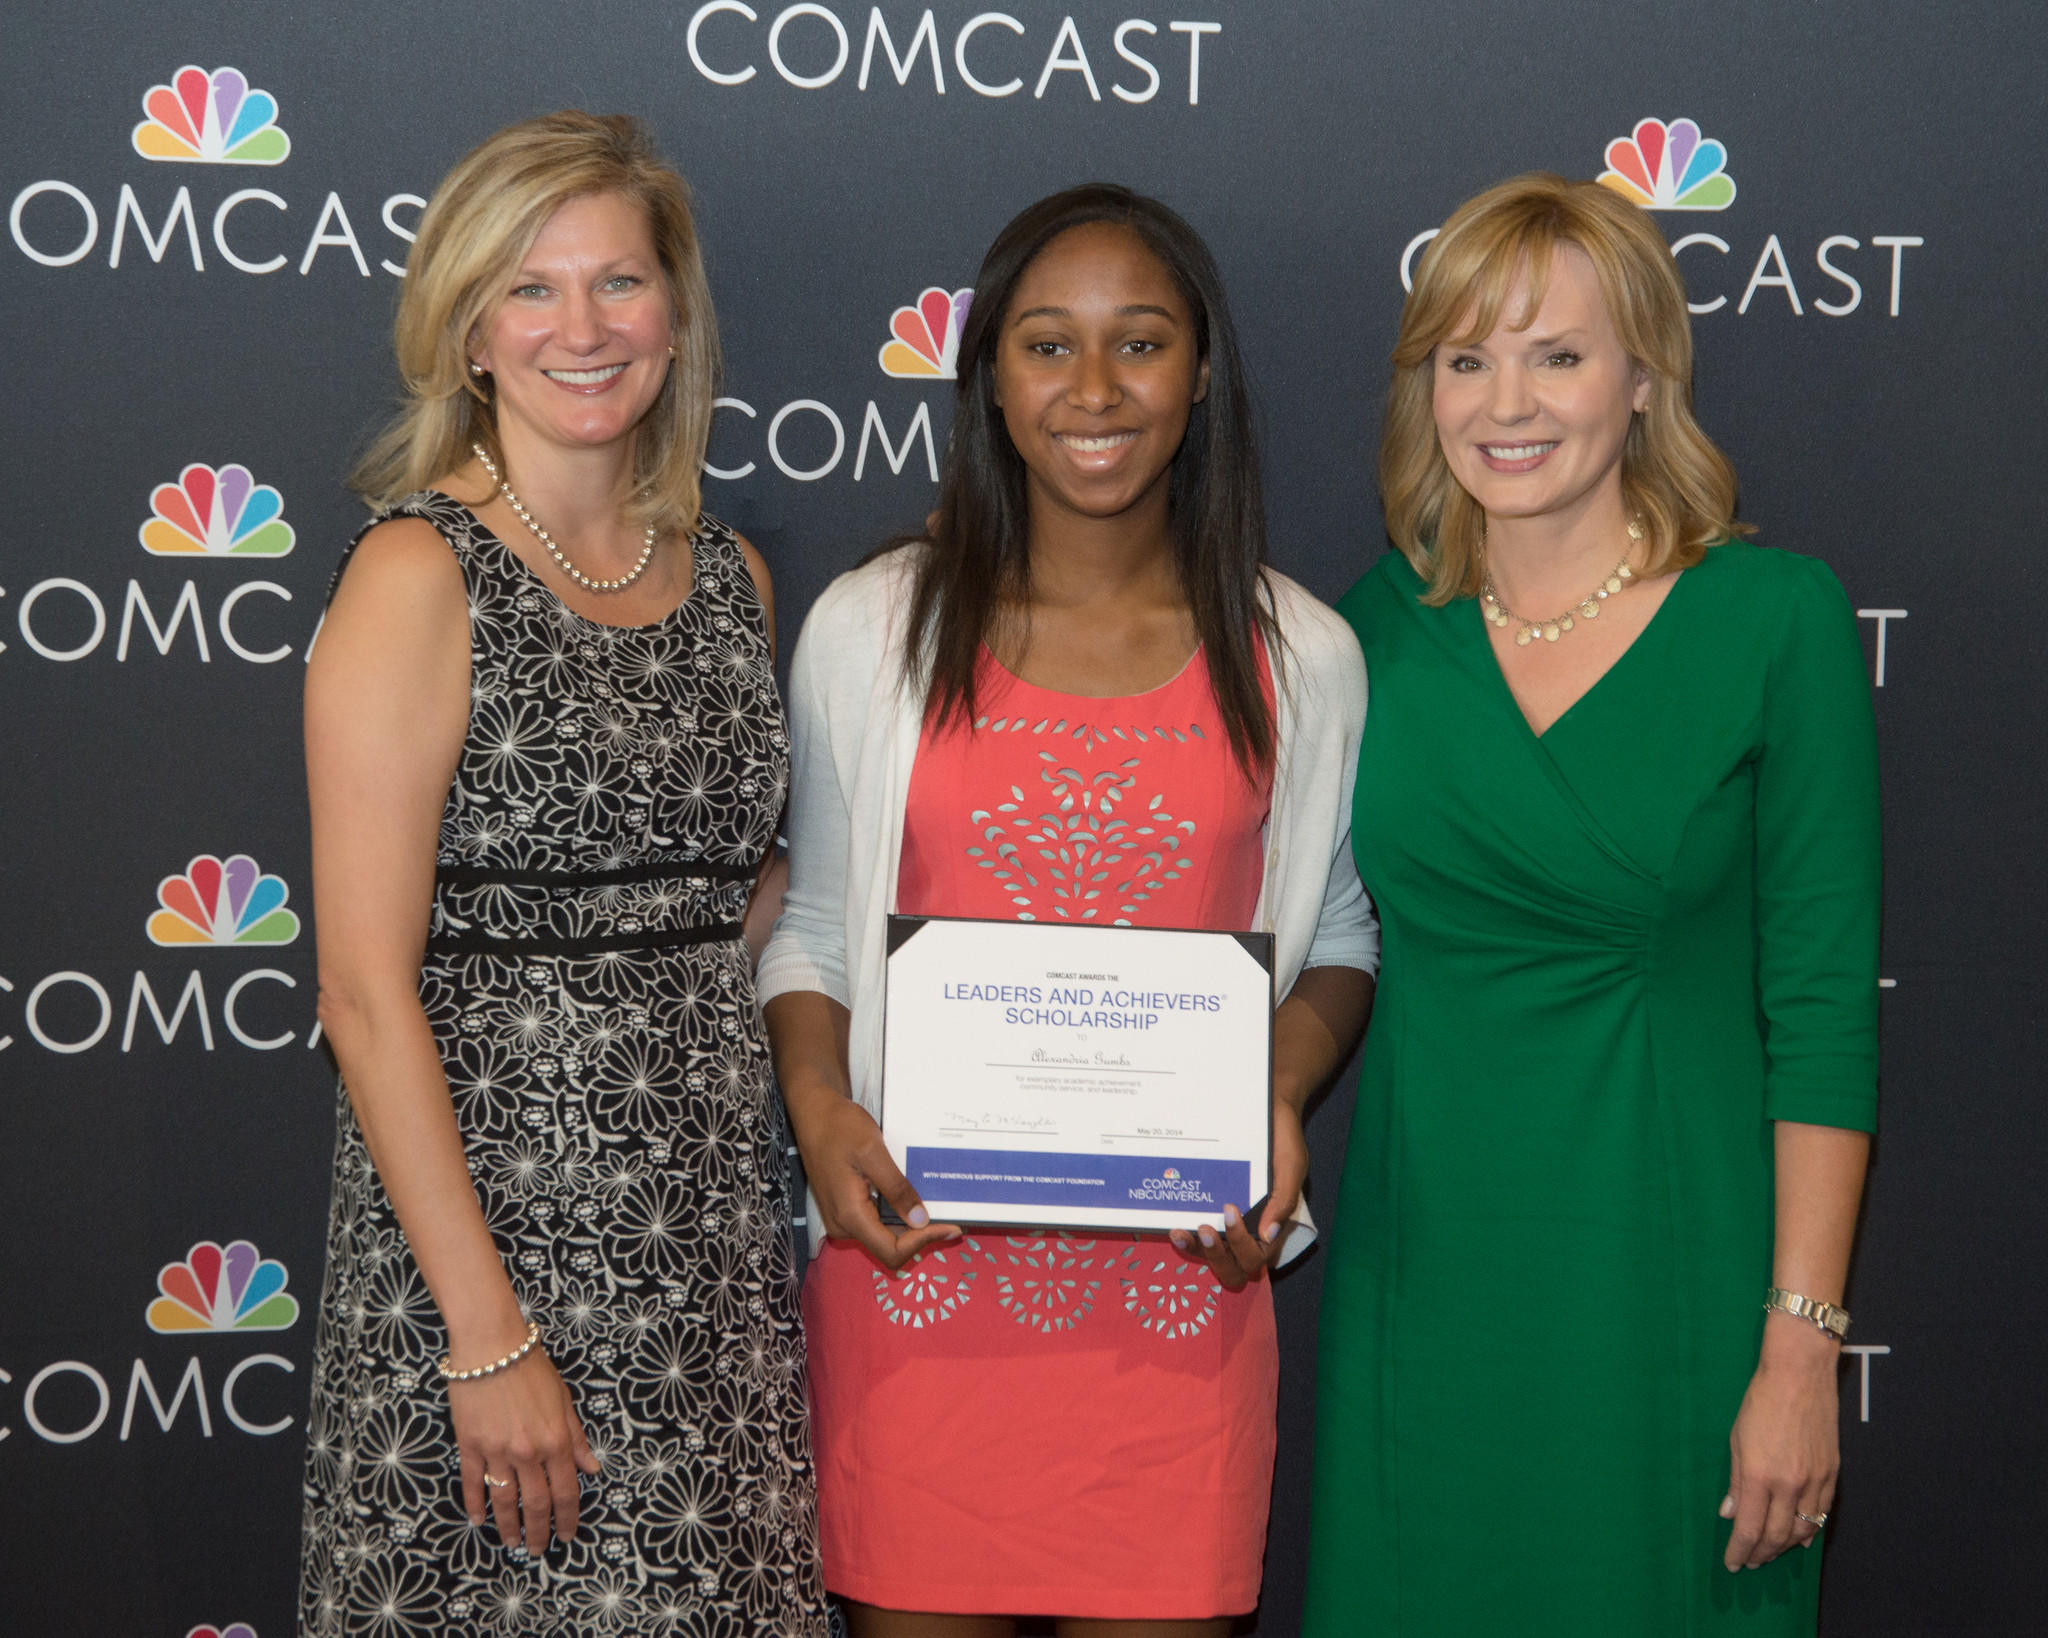 Left to right: Kristen Roberts, Comcast VP of Community Investment, Alexandria R. Gumbs, and Lisa Carberg, NBC Connecticut news anchor.